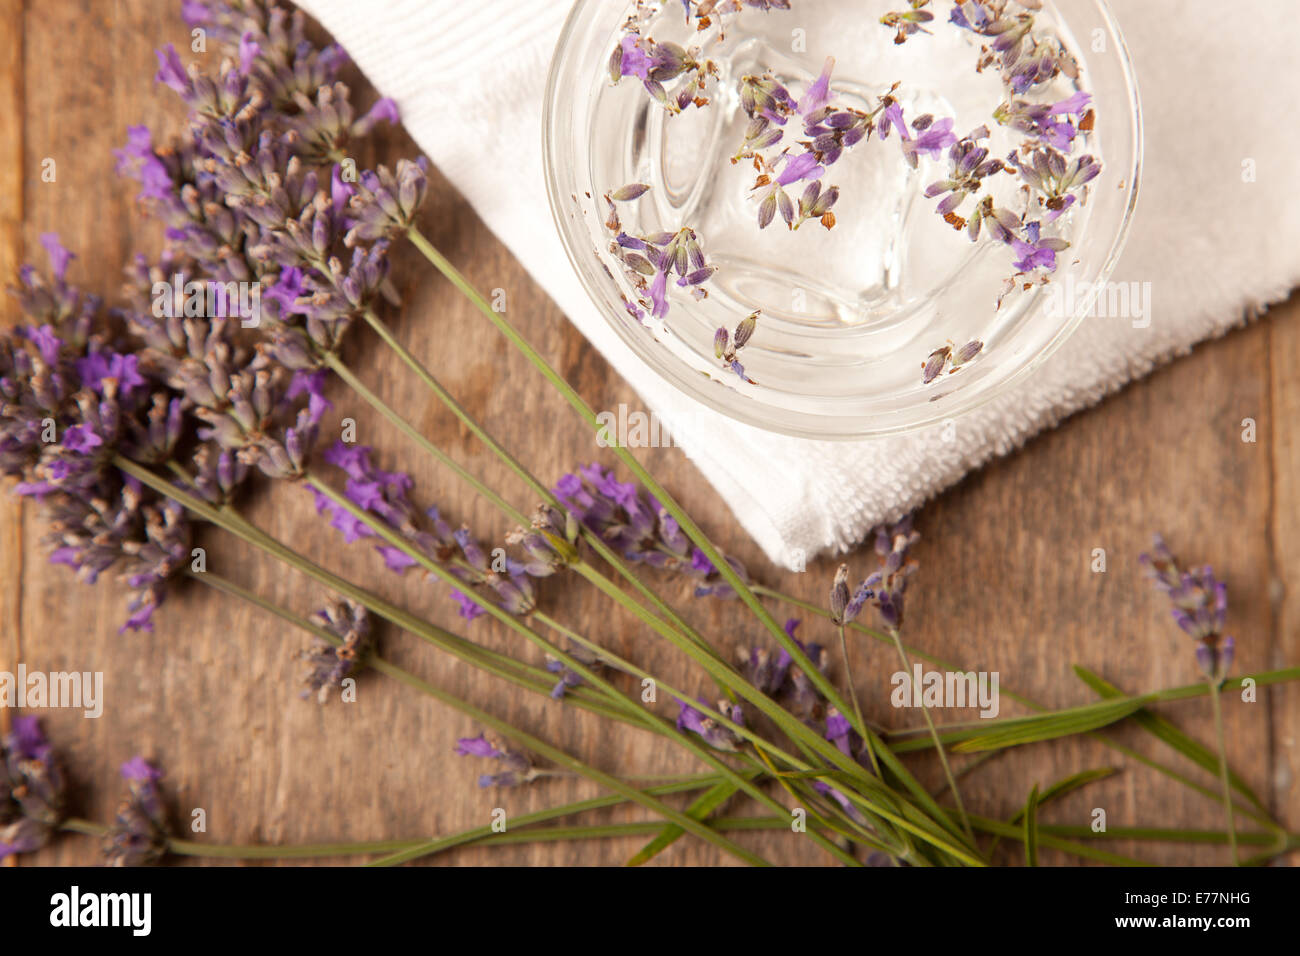 lavenders in the bowl of water on wooden table - Stock Image